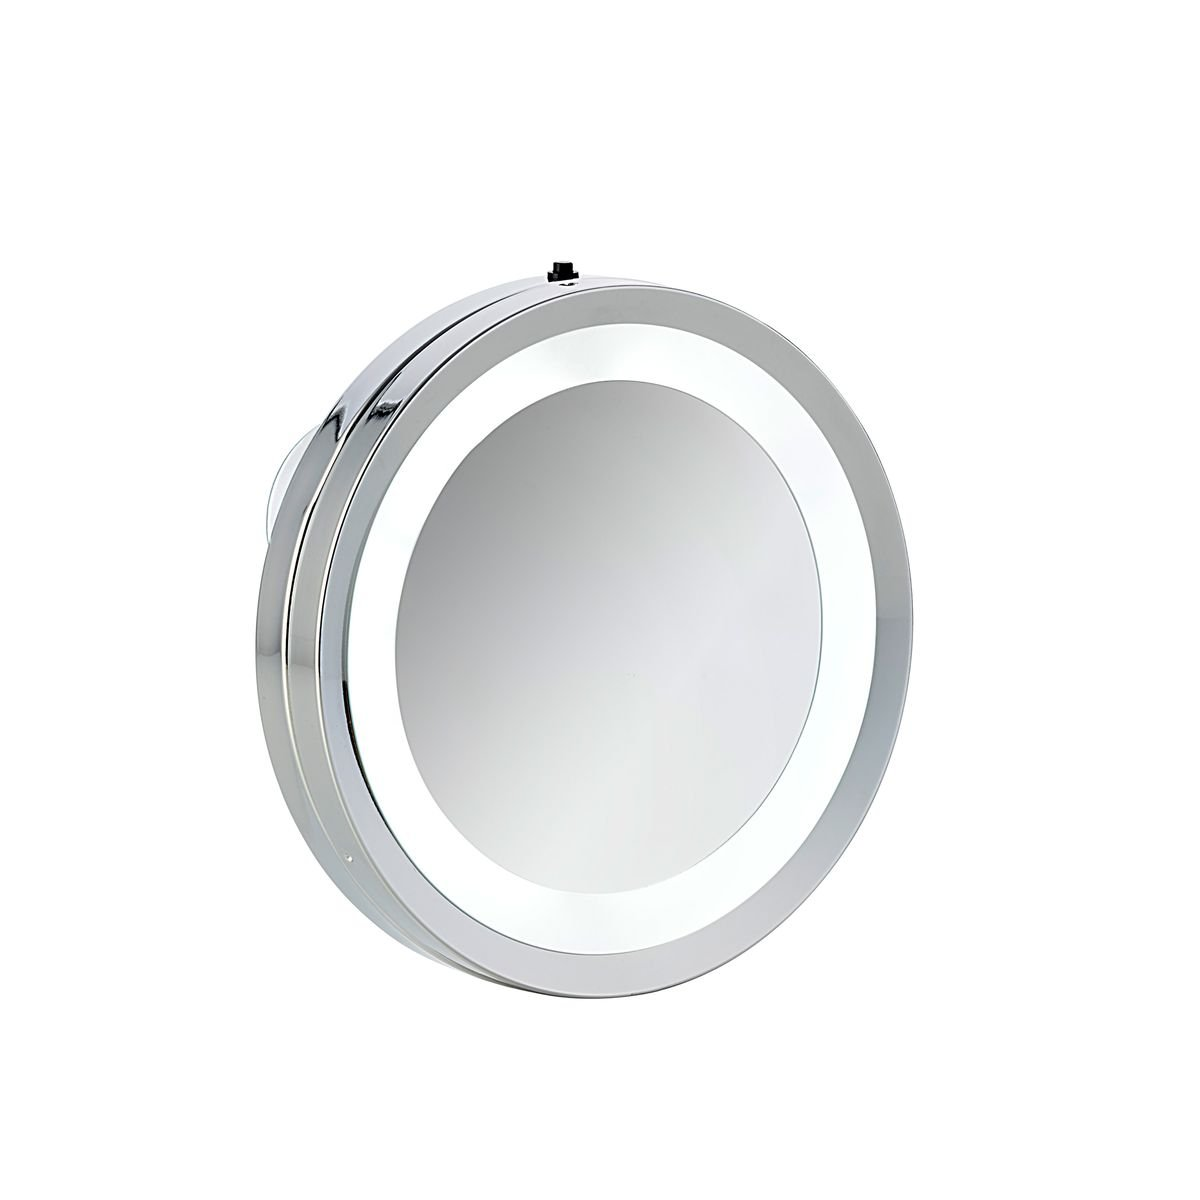 Axentia Round Wall Mirror with Suction Cup Bathroom Mirror Illuminated LED Bathroom Mirror Bathroom Make-up and Cosmetics Mirror, Metal, Silver, 15x 15x 2cm